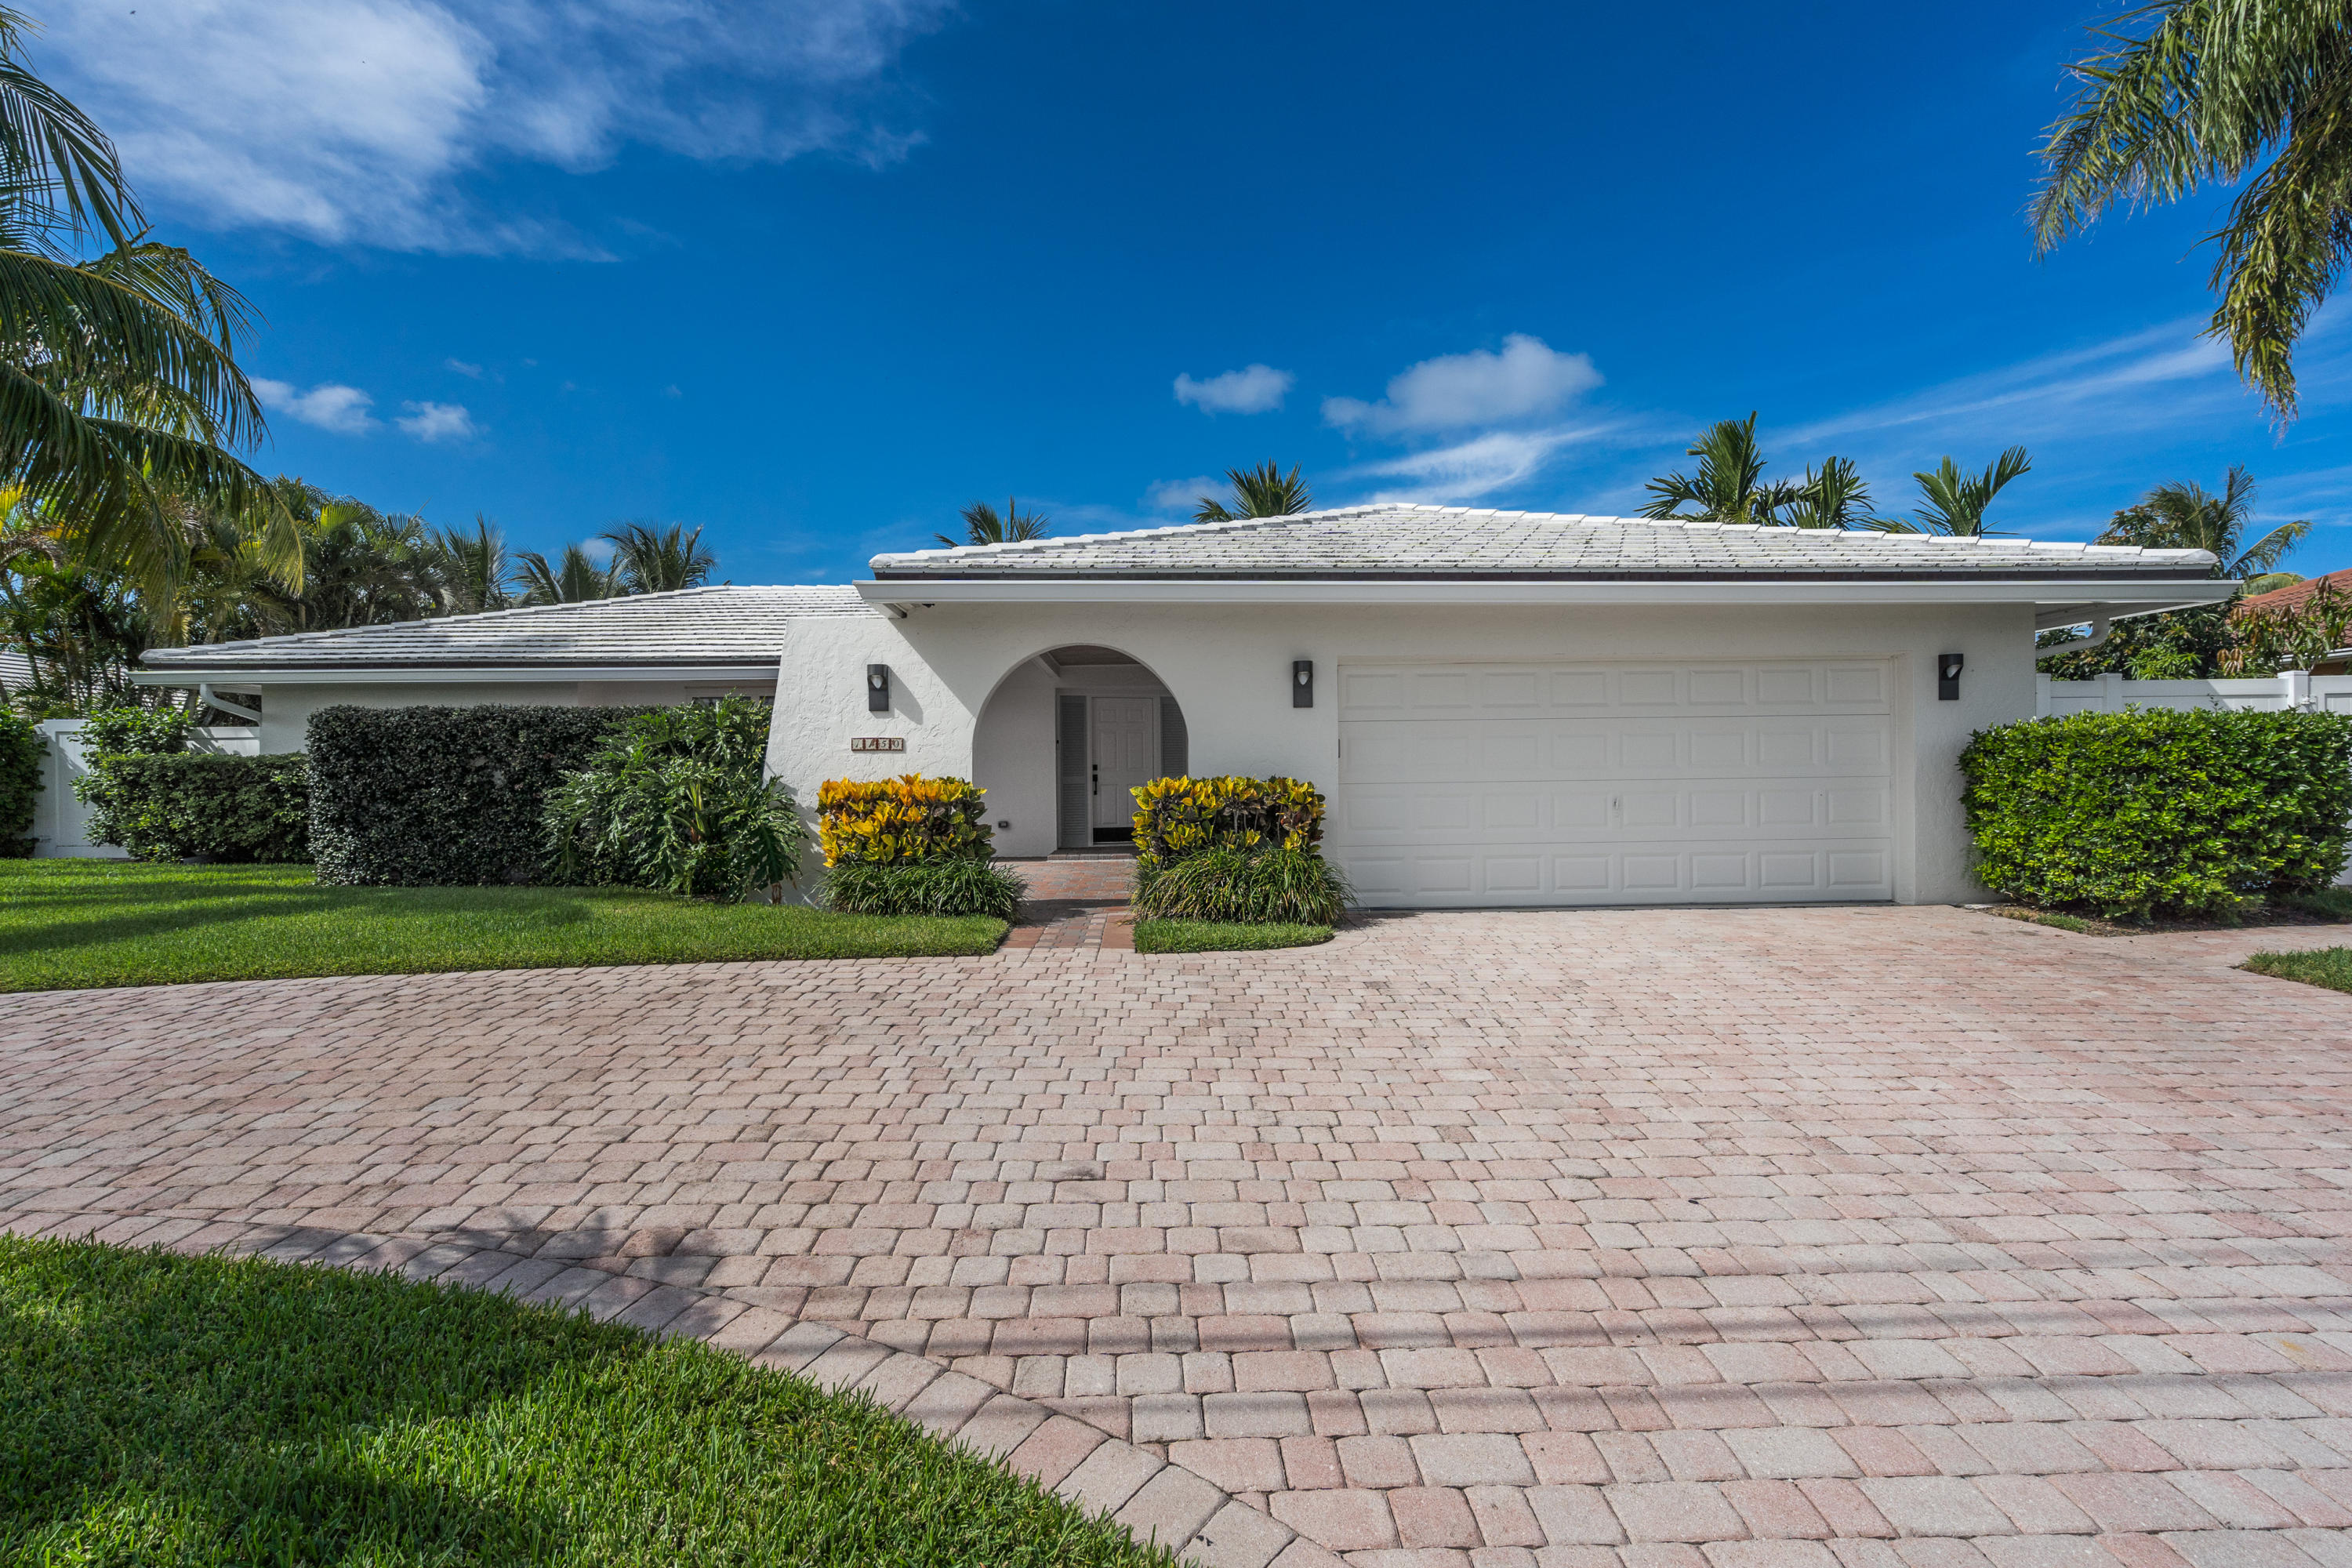 New Home for sale at 1150 Fairview Lane in Singer Island